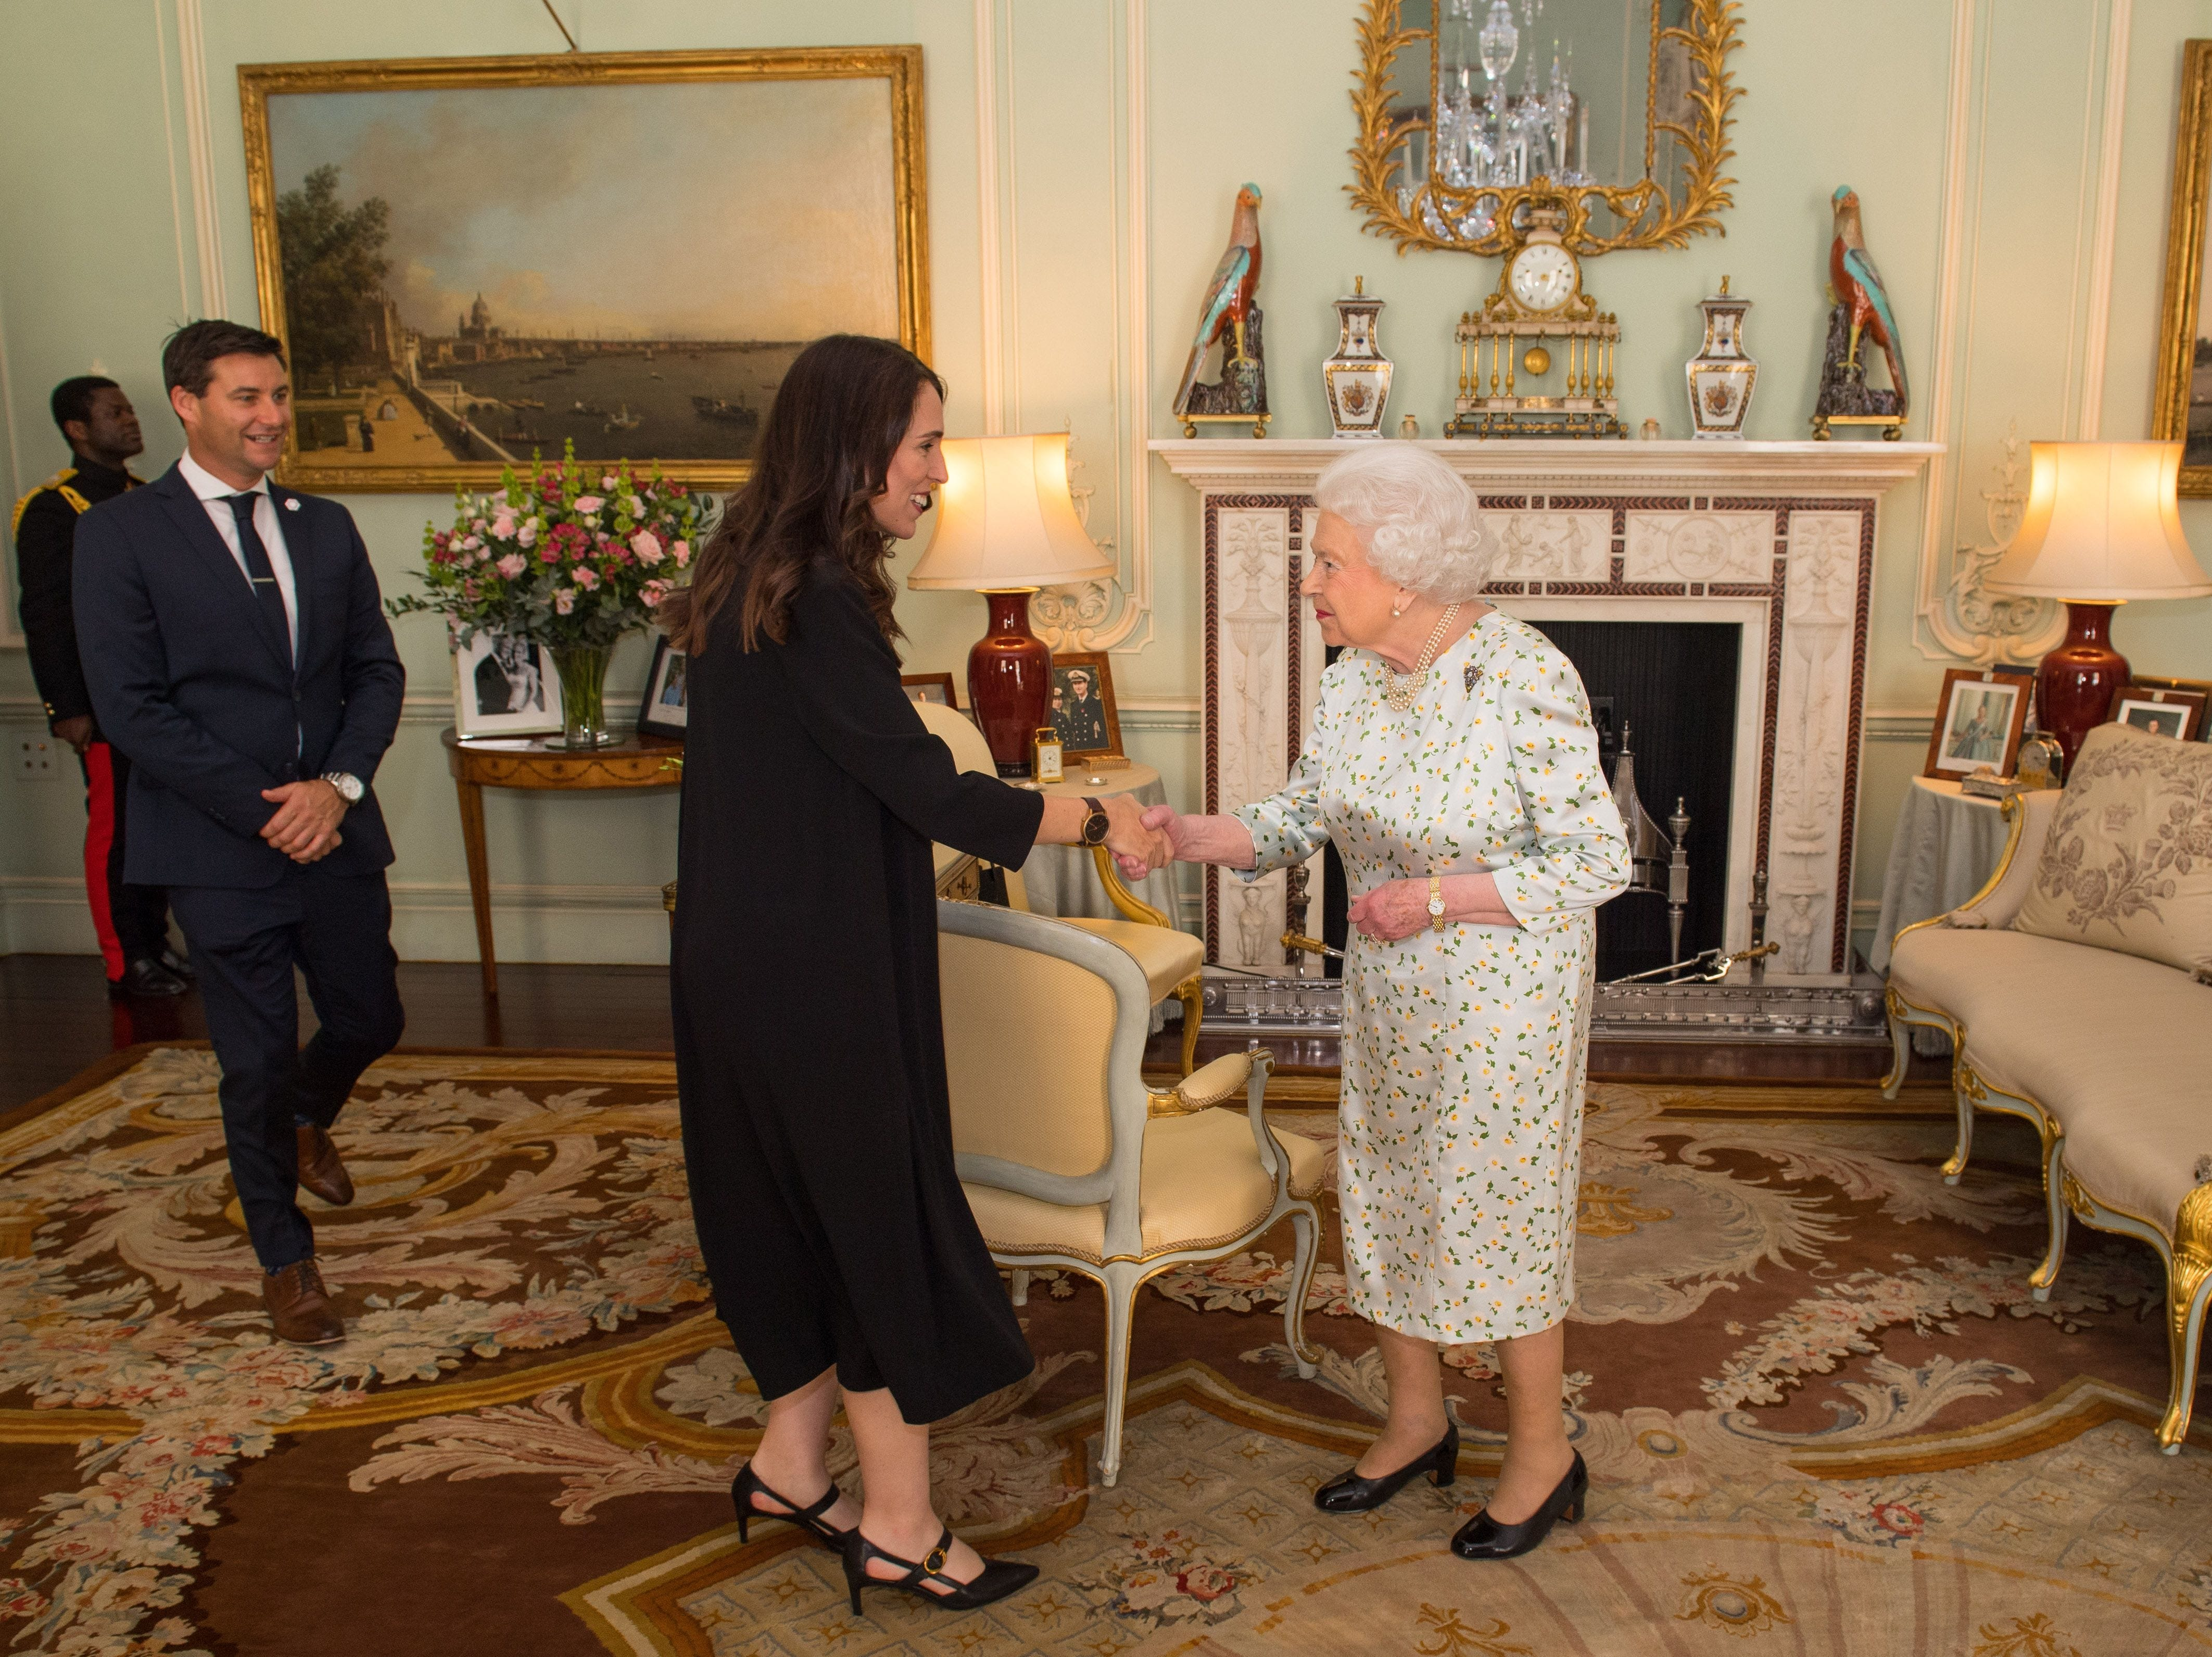 Prime Minister of New Zealand Jacinda Ardern  and her partner Clarke Gayford  are greeted by Britain's Queen Elizabeth II during a private audience at Buckingham Palace in London on April 19, 2018. Queen Elizabeth II, the Head of the Commonwealth opened the Commonwealth summit for what may be the last time today.